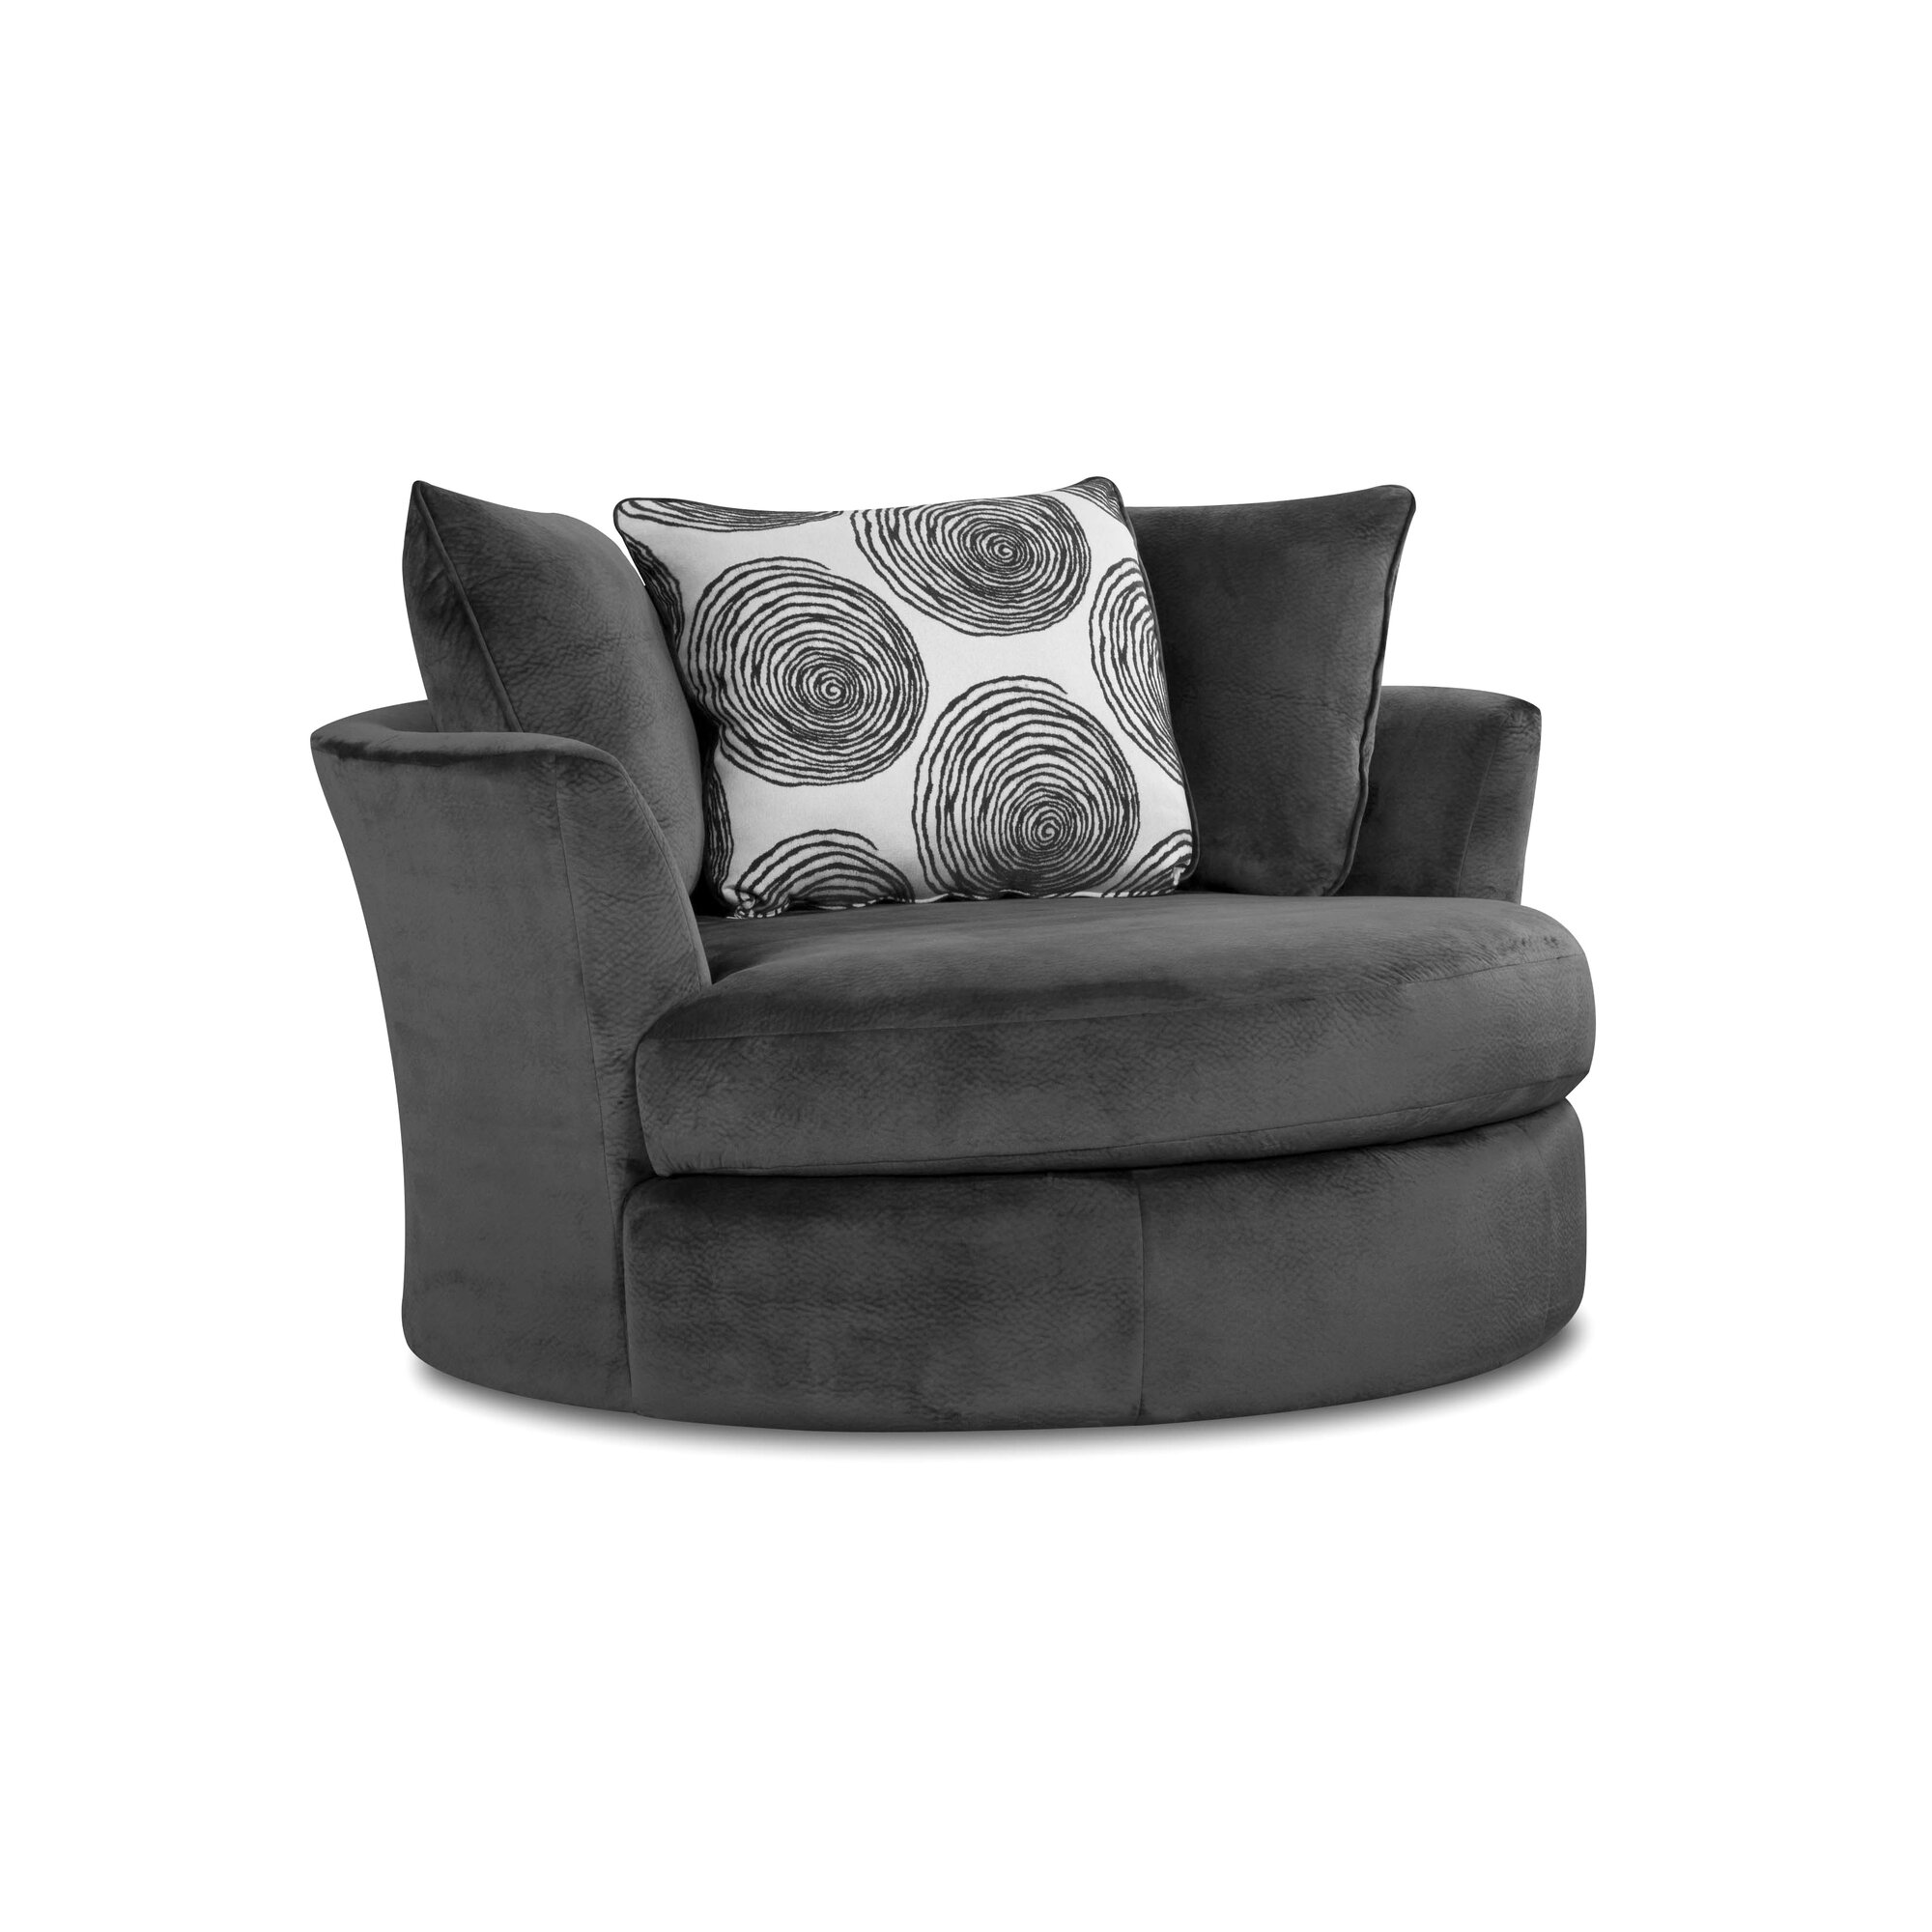 Swivel Chairs Youll Love Wayfair -  black and white chairs